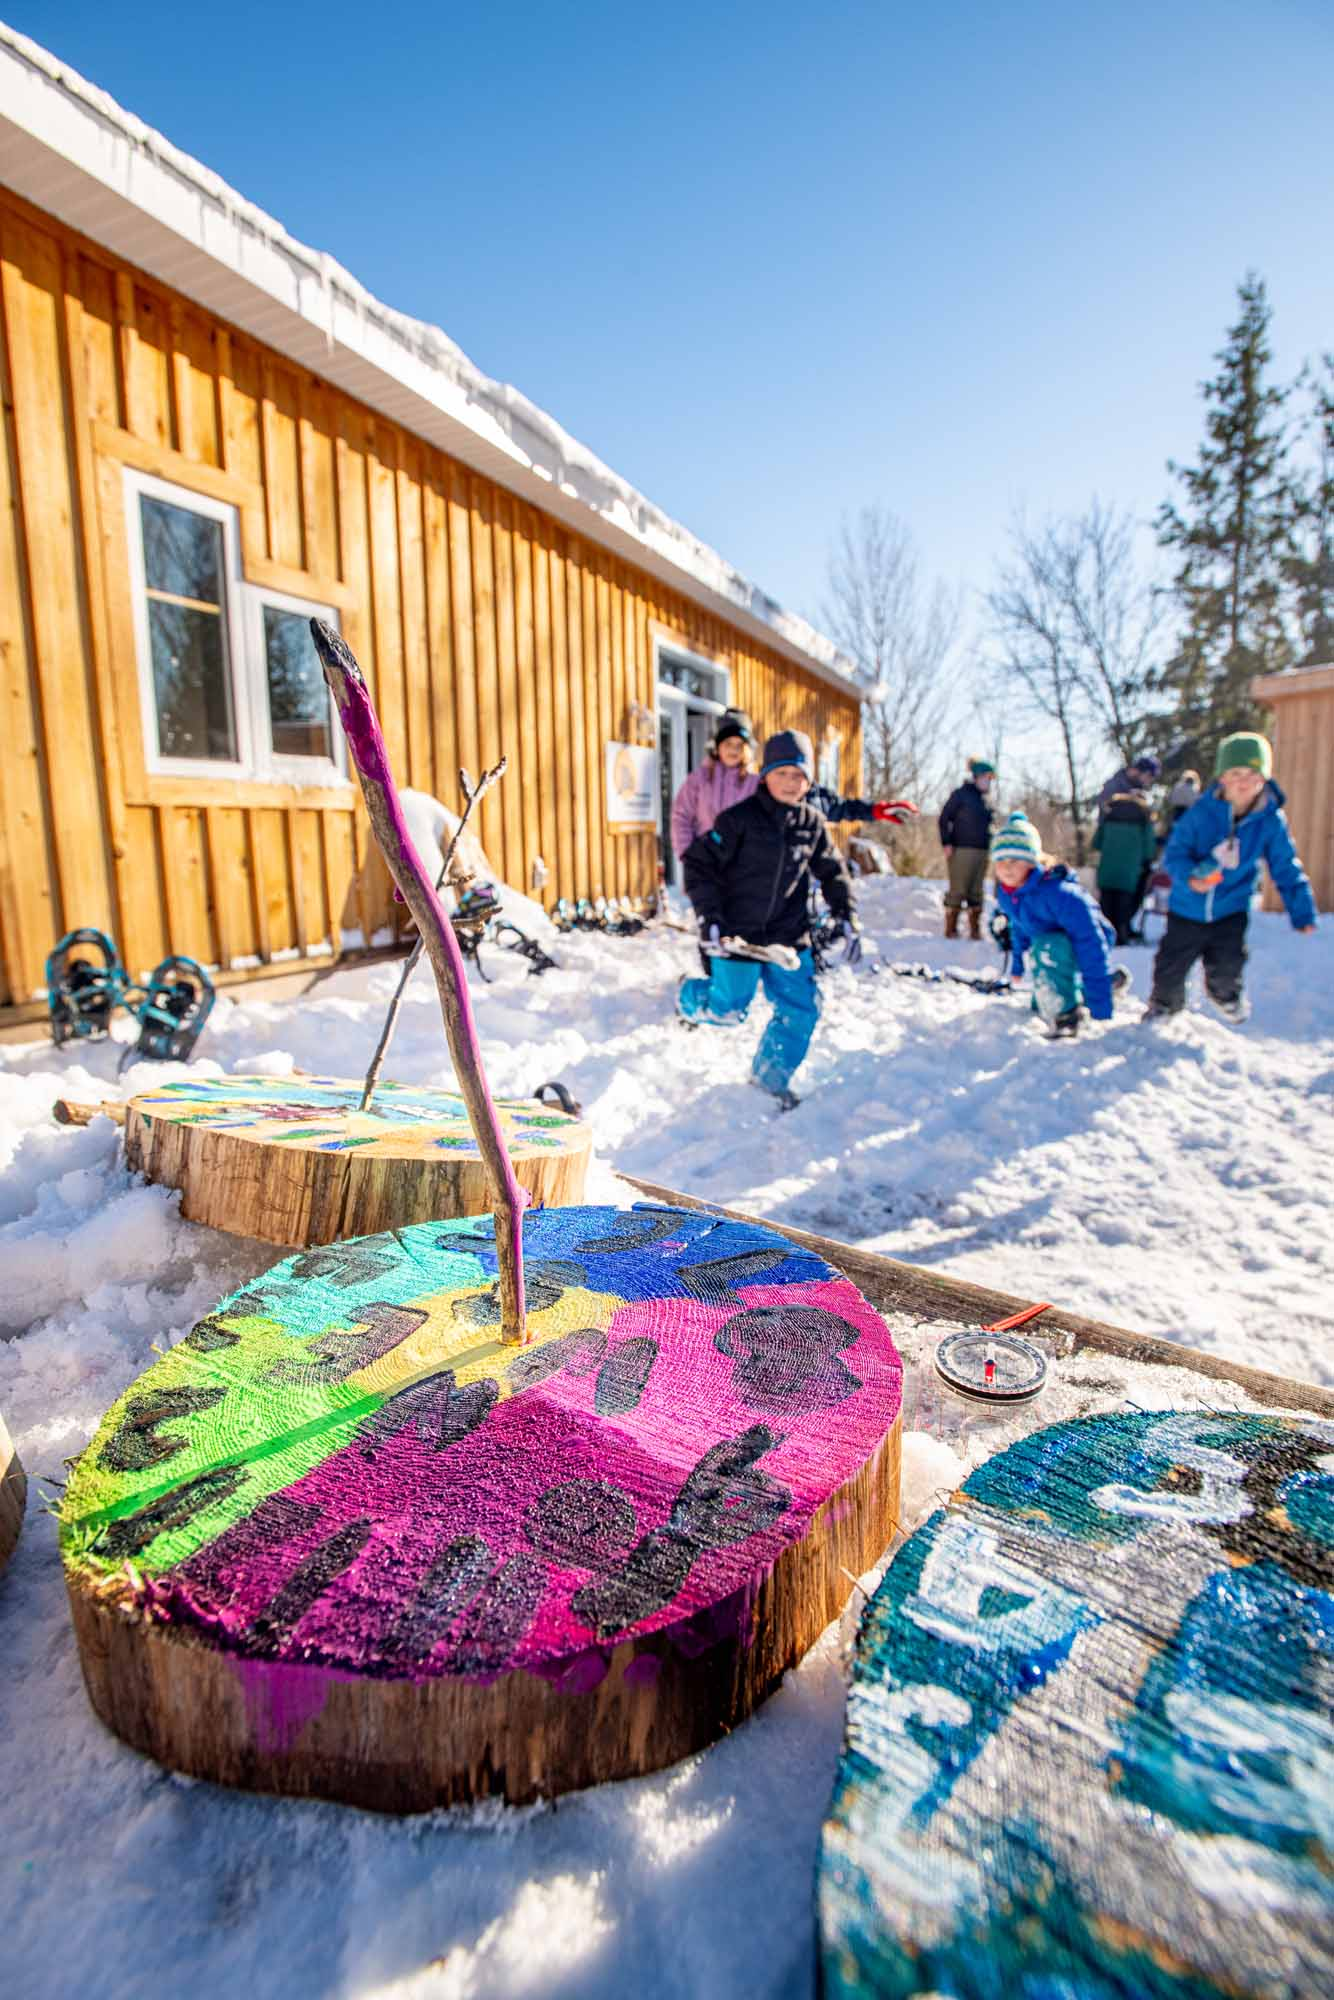 Nature-as-Teacher-Outdoor-Schools-Bring-Learning-Into-the-Elements-photo-by-Kristin-Schnelten-kids-running